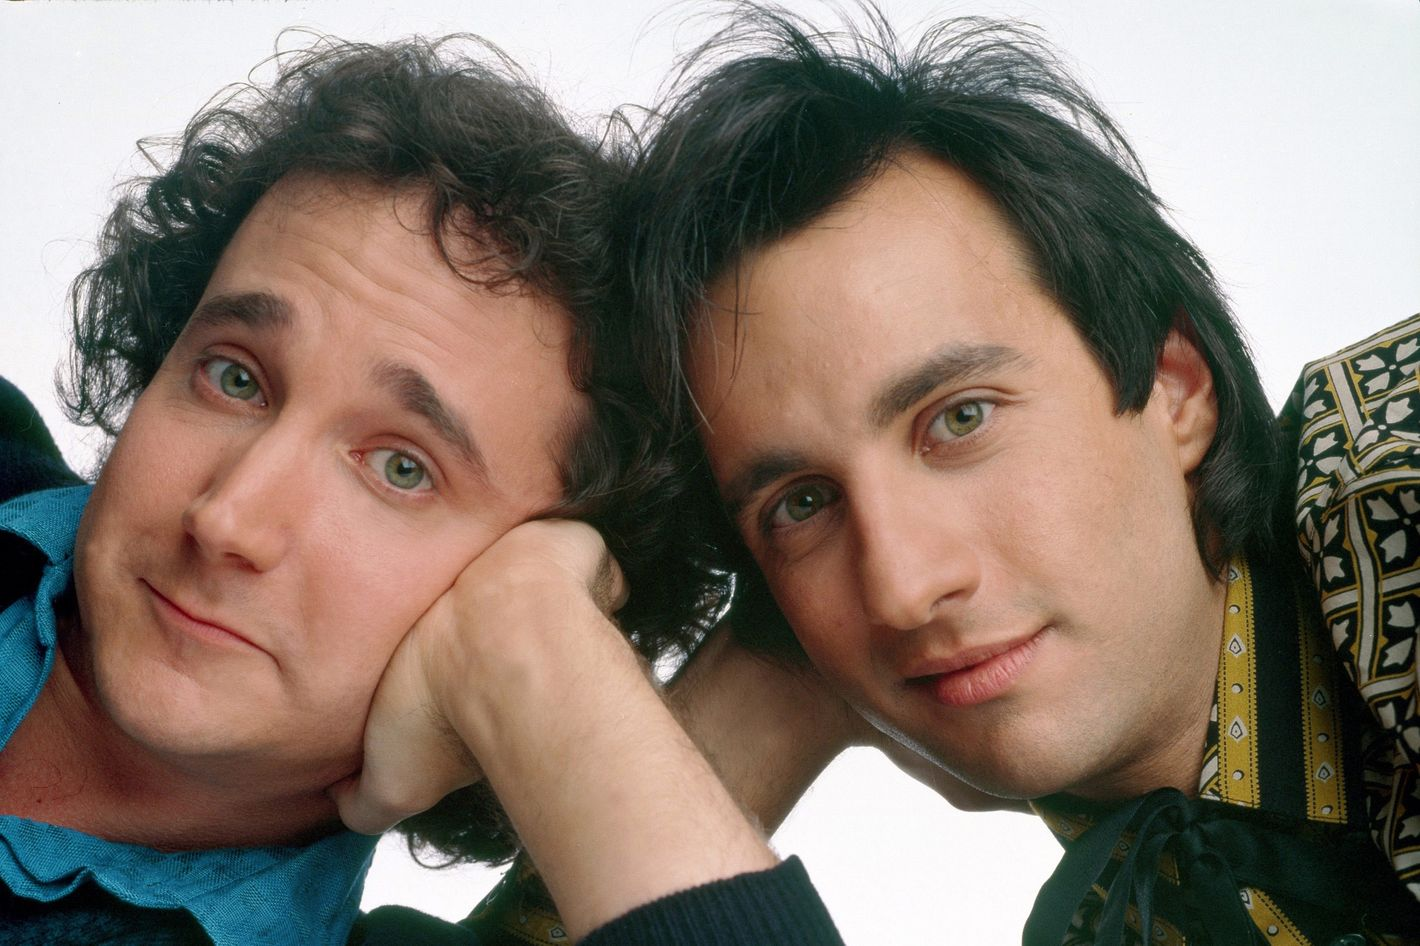 vulture.com - John Sellers - Bronson Pinchot Weighs in on The Leftovers' Rapturing of the Perfect Strangers Cast